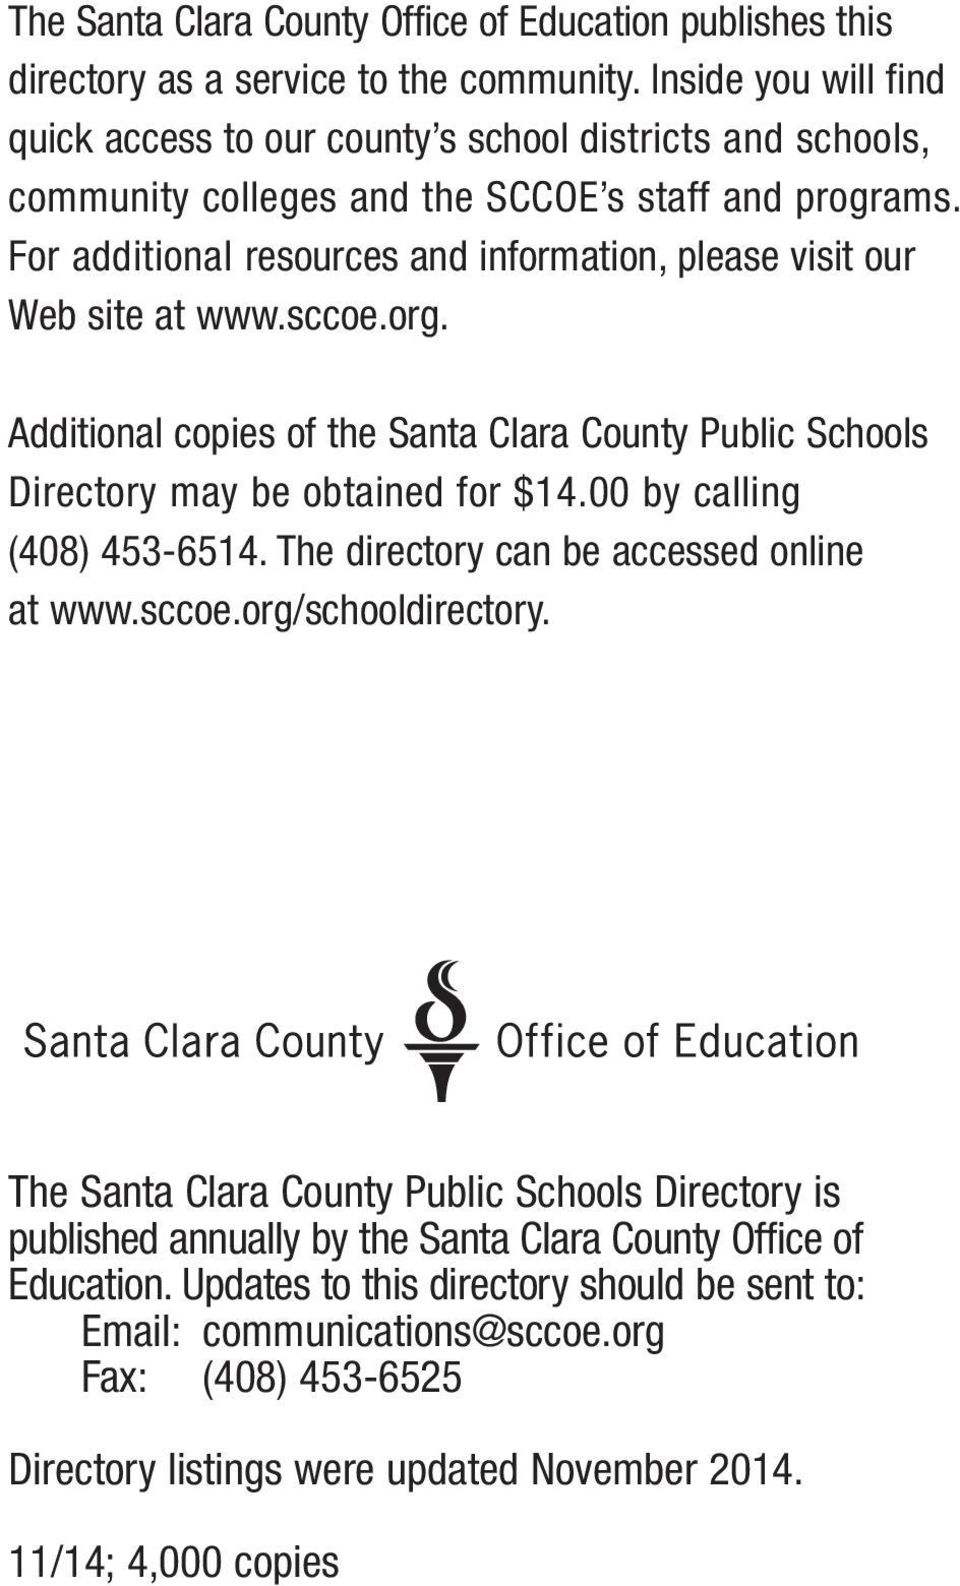 For additional resources and information, please visit our Web site at www.sccoe.org. Additional copies of the Santa Clara County Public Schools Directory may be obtained for $14.